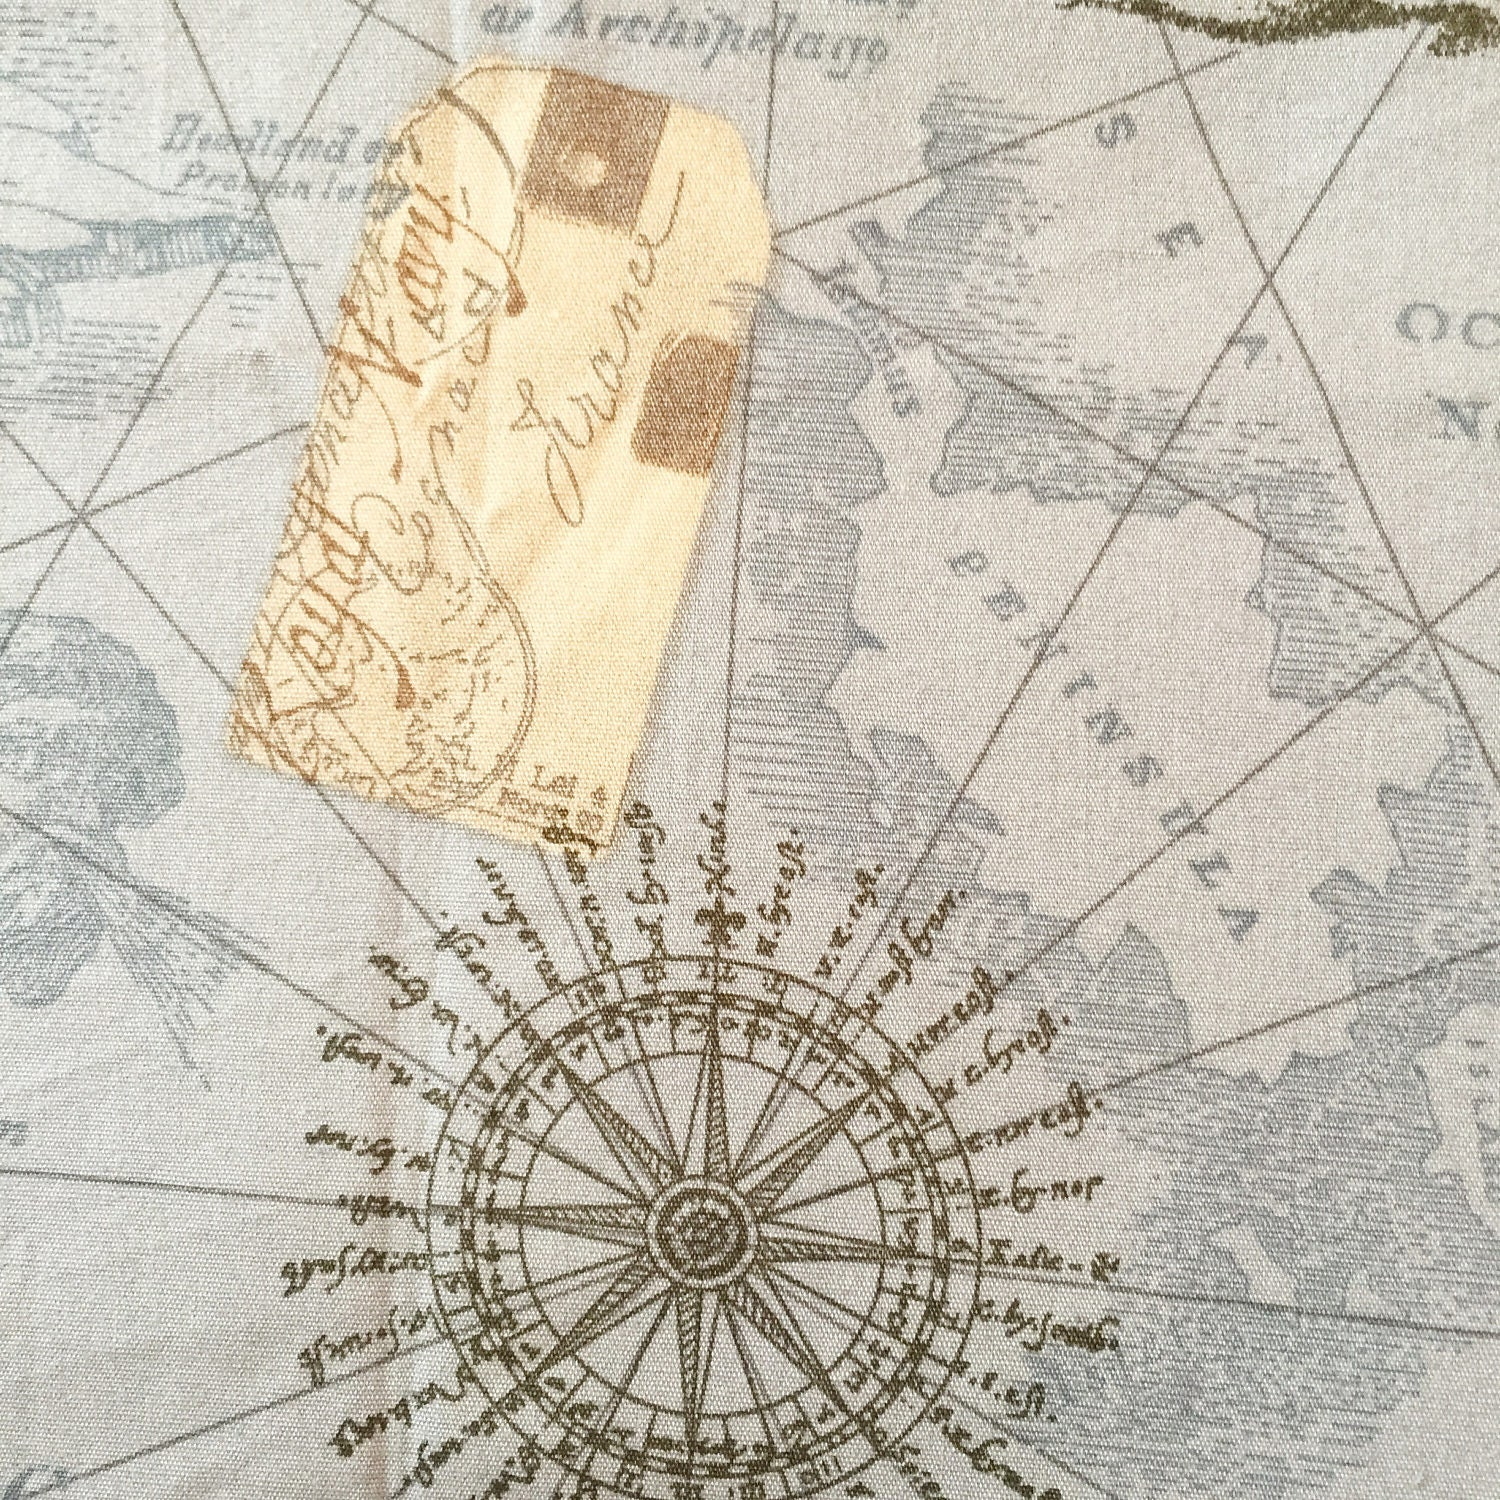 Map fabric by the yard world map fabric vintage map print fabric sold by cmfabric gumiabroncs Choice Image